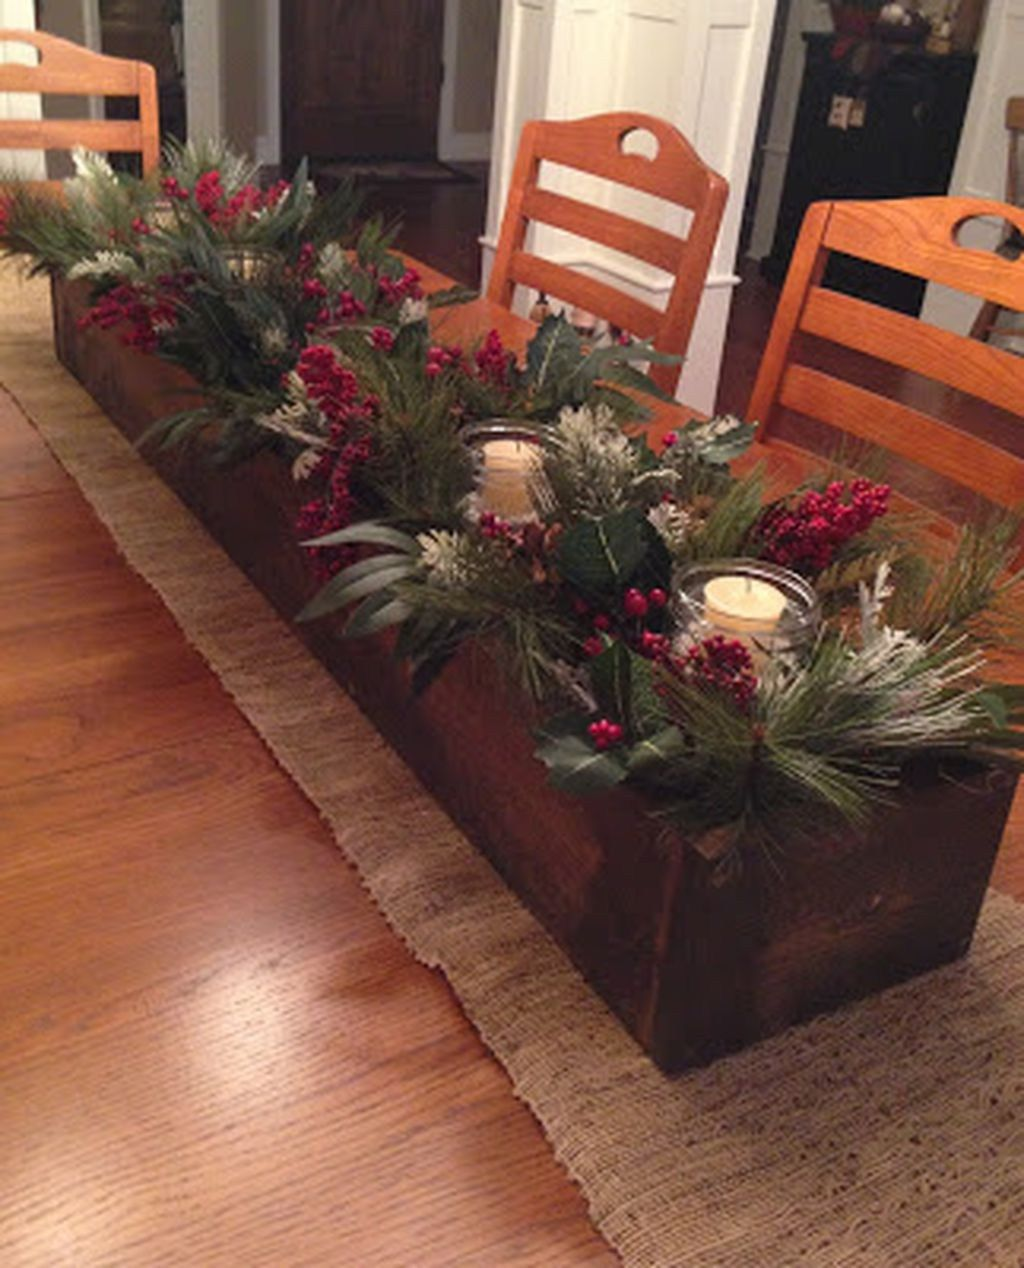 Easy And Simple Christmas Table Centerpieces Ideas For Your Dining Room 20 Christmas Centerpieces Christmas Table Centerpieces Christmas Diy